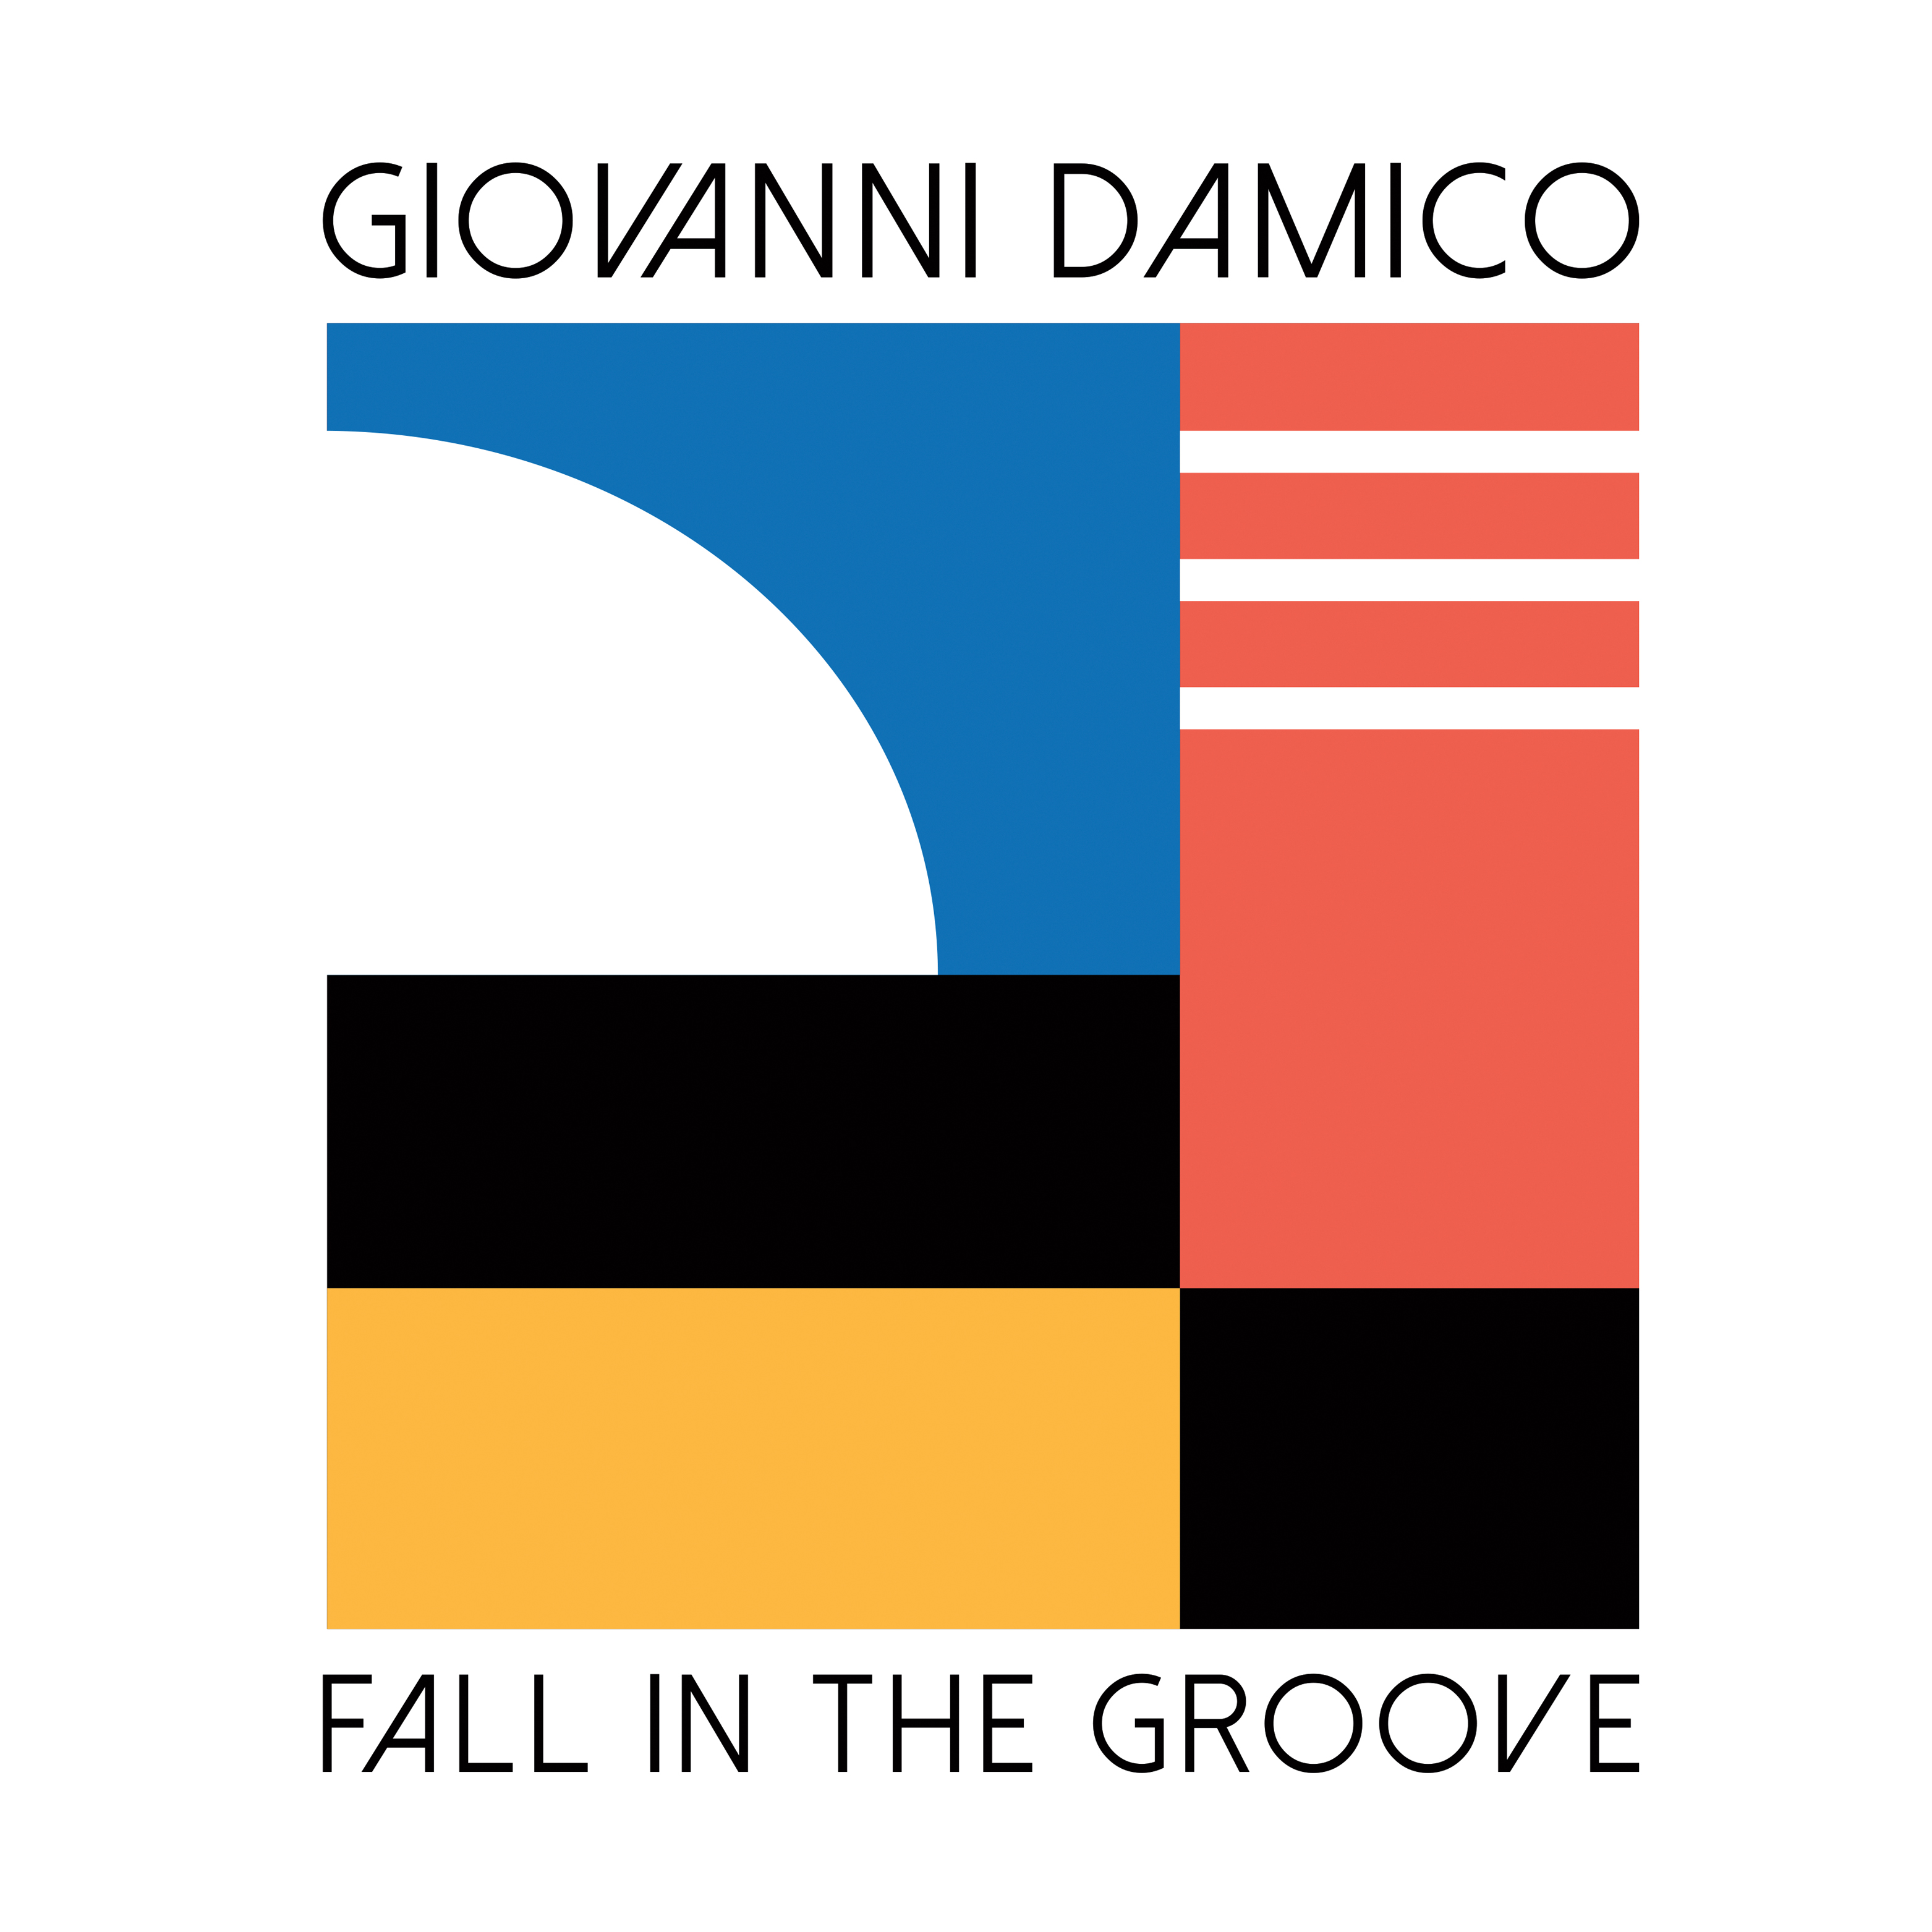 Giovanni Damico/FALL IN THE GROOVE 12""